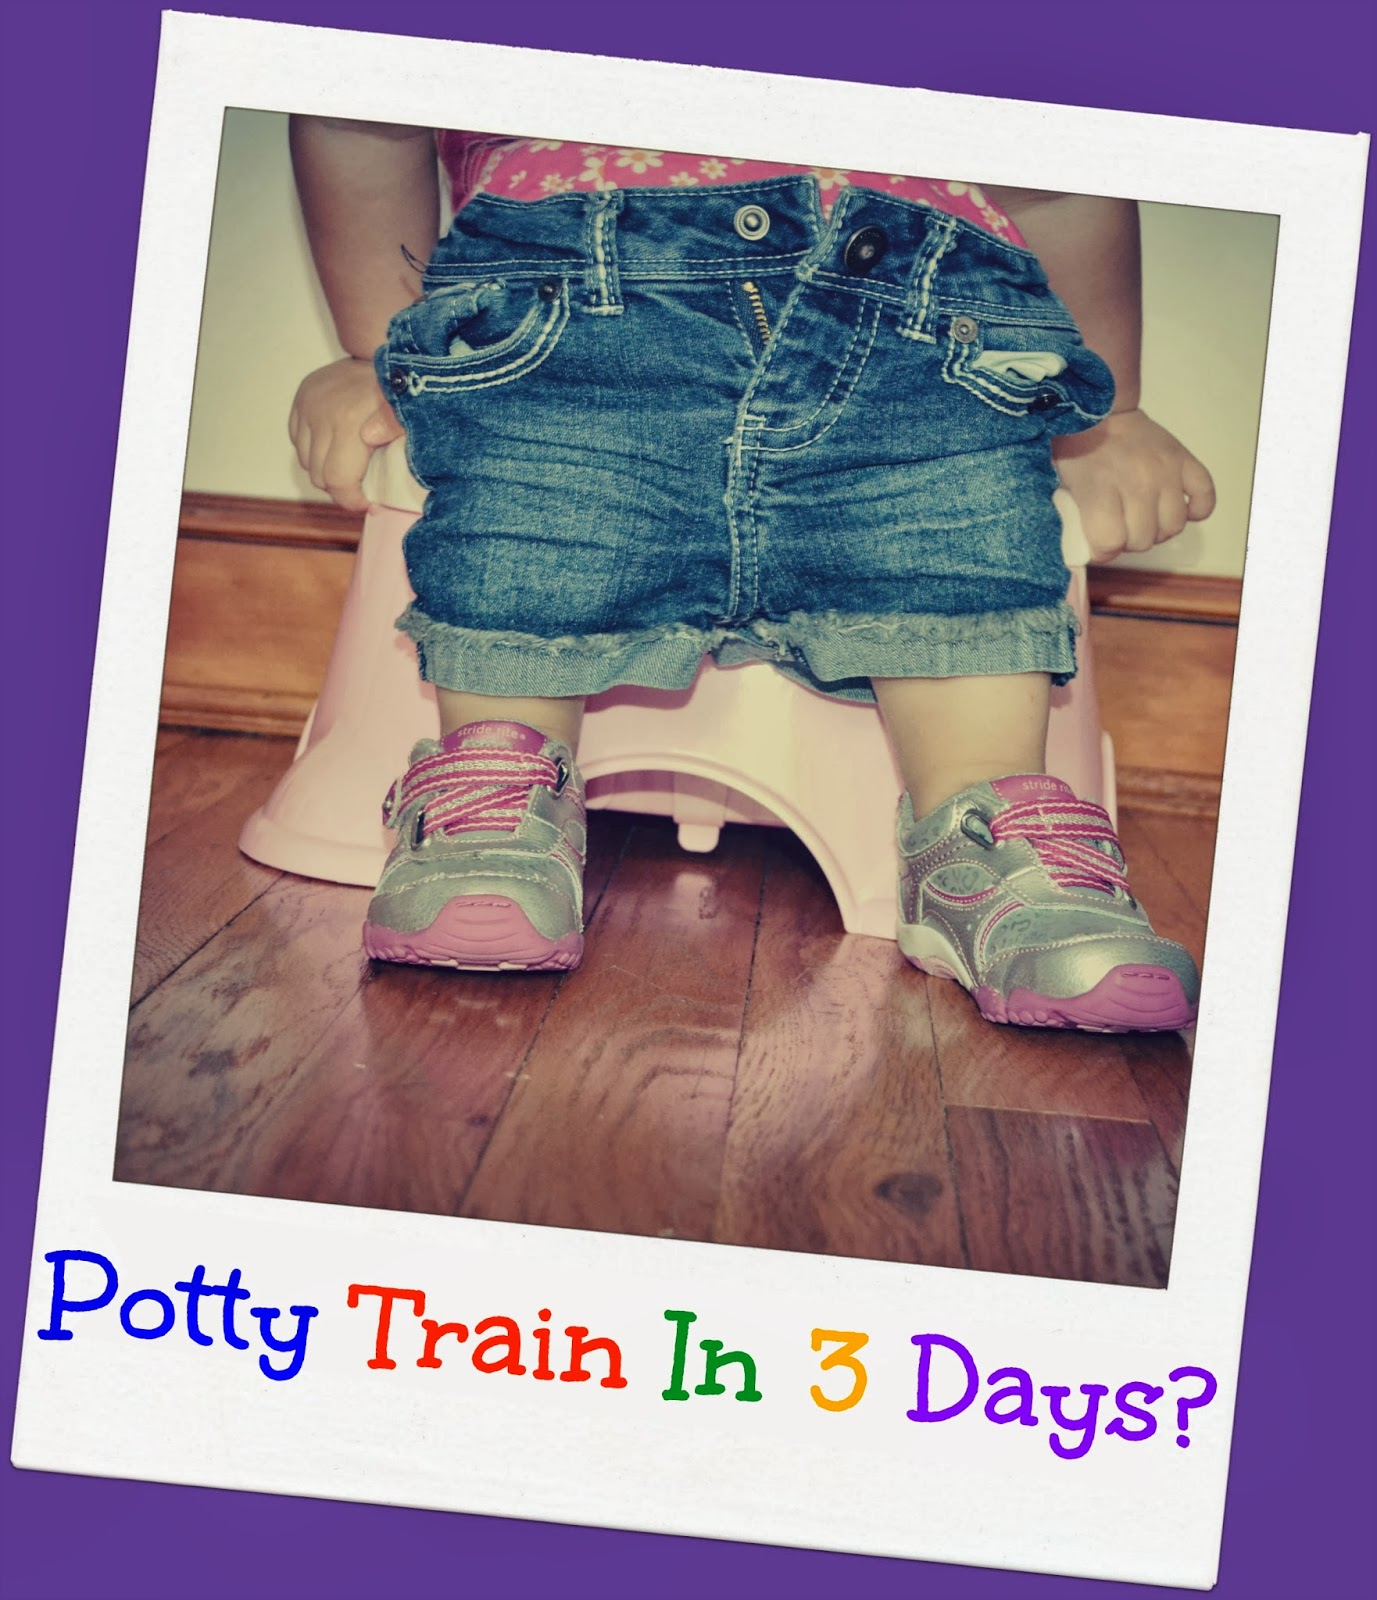 potty training tips, potty training, potty train in 3 days